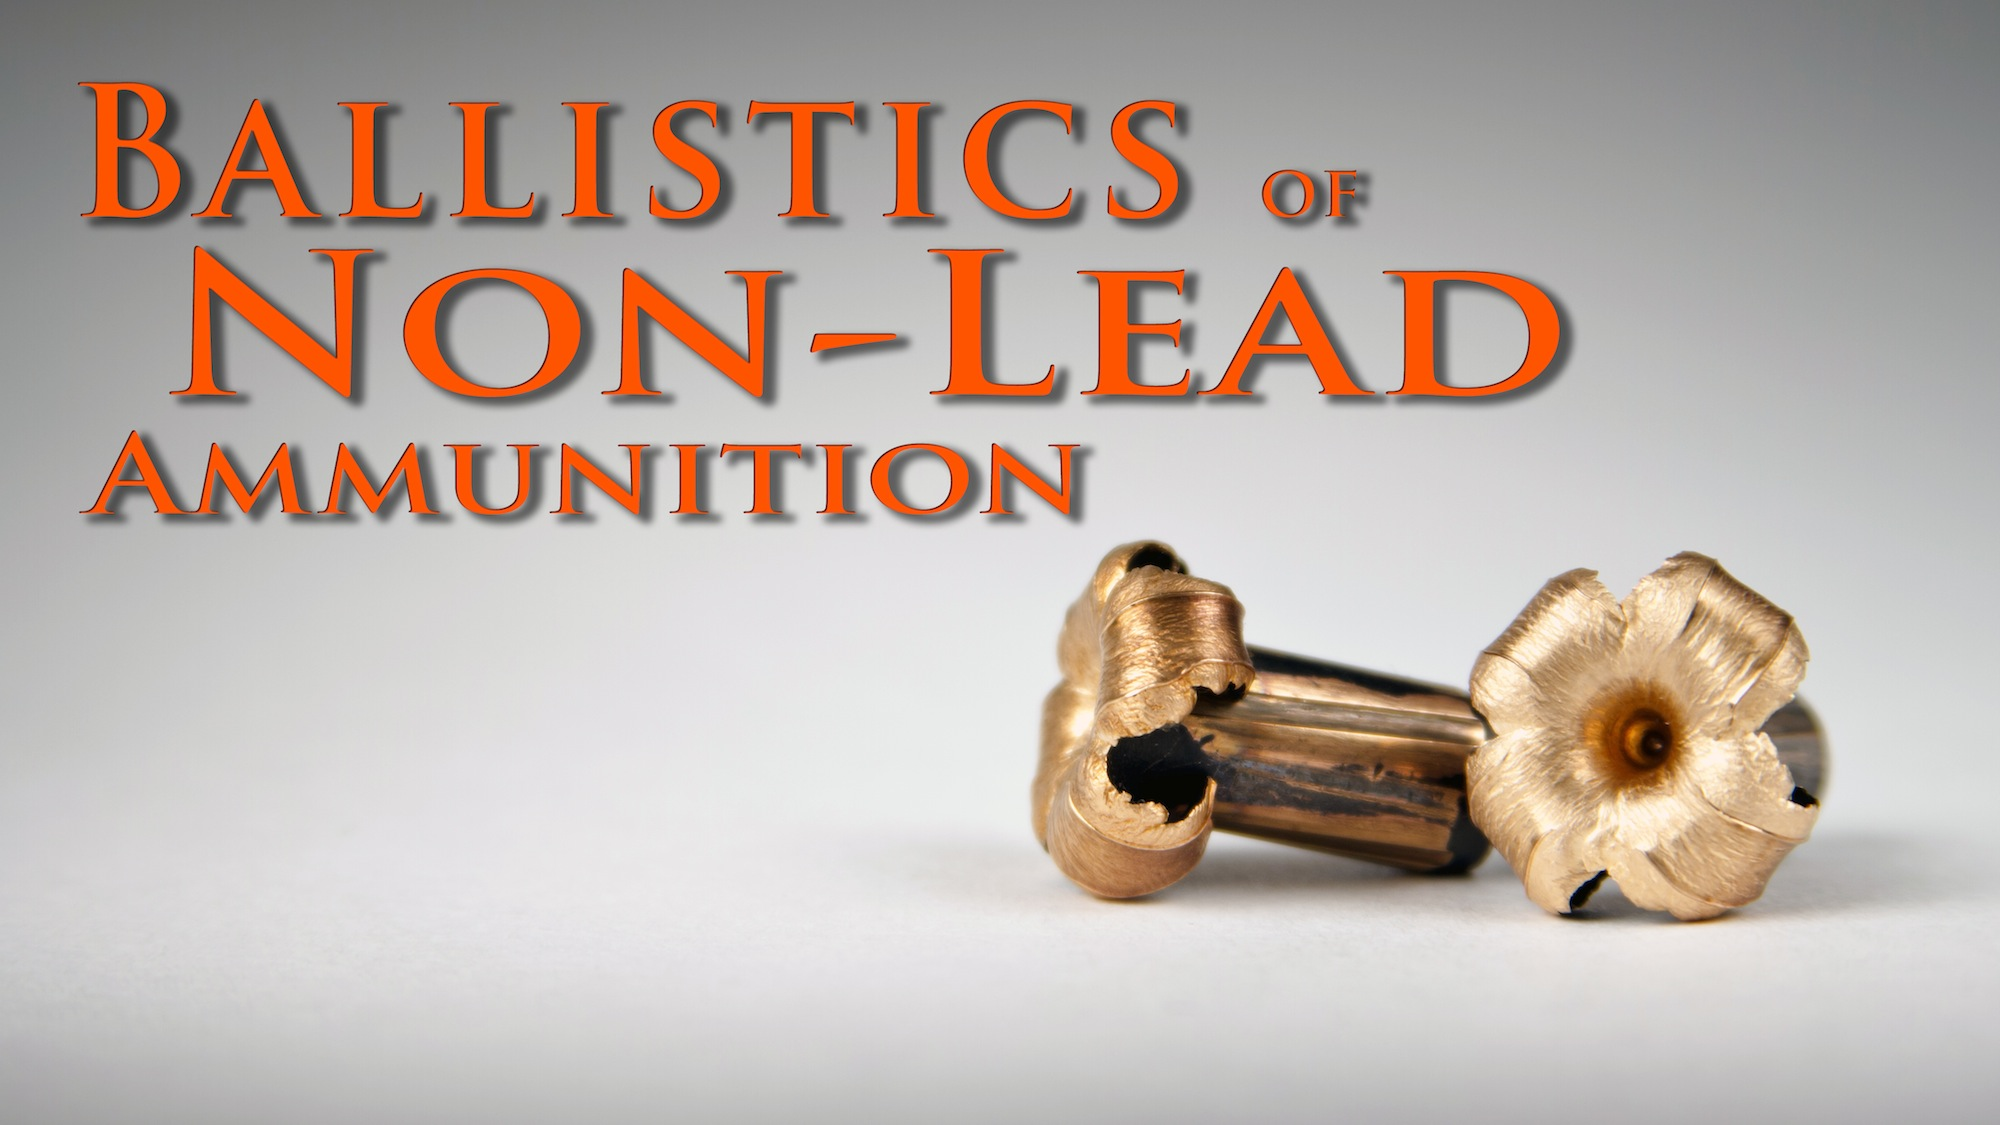 Ballistics of Non-Lead Ammunition